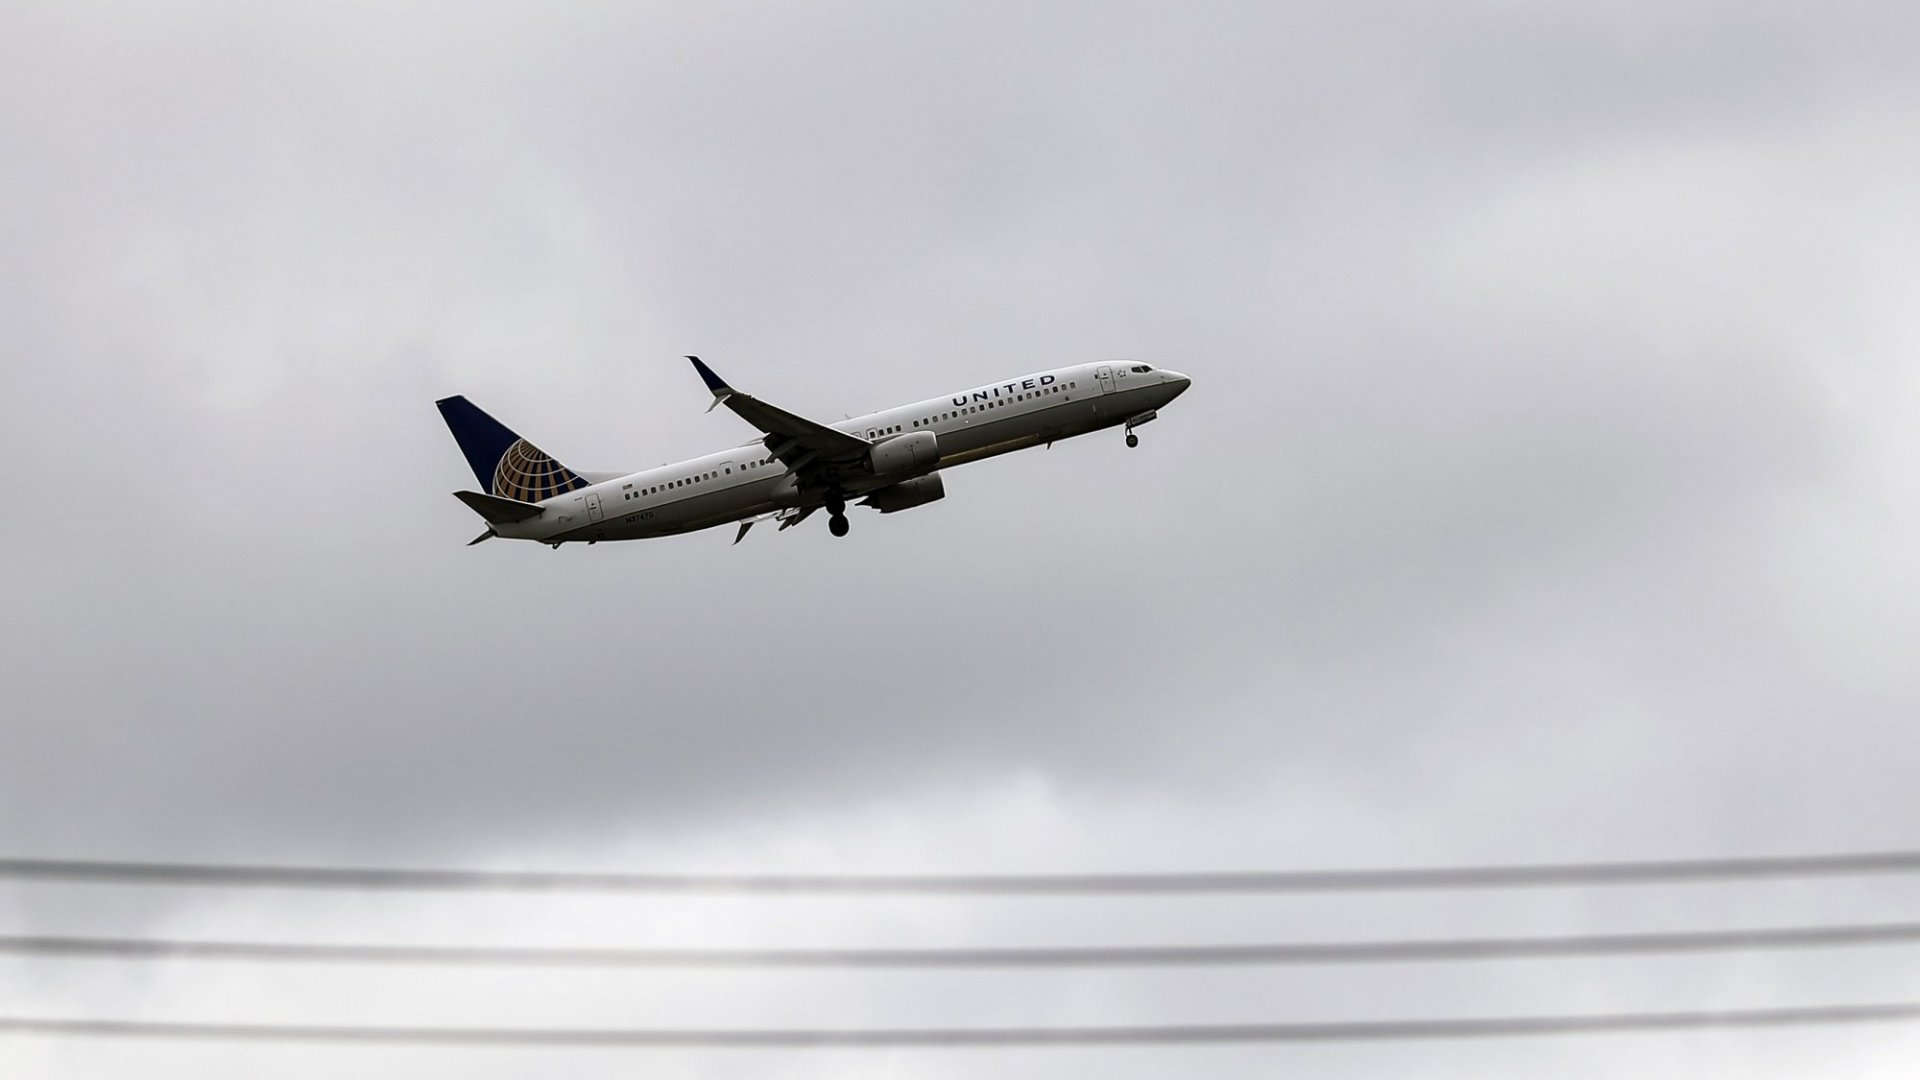 United Flight Nearly Takes Off With Fuel Leak Until Passengers Convince Crew There's a Problem